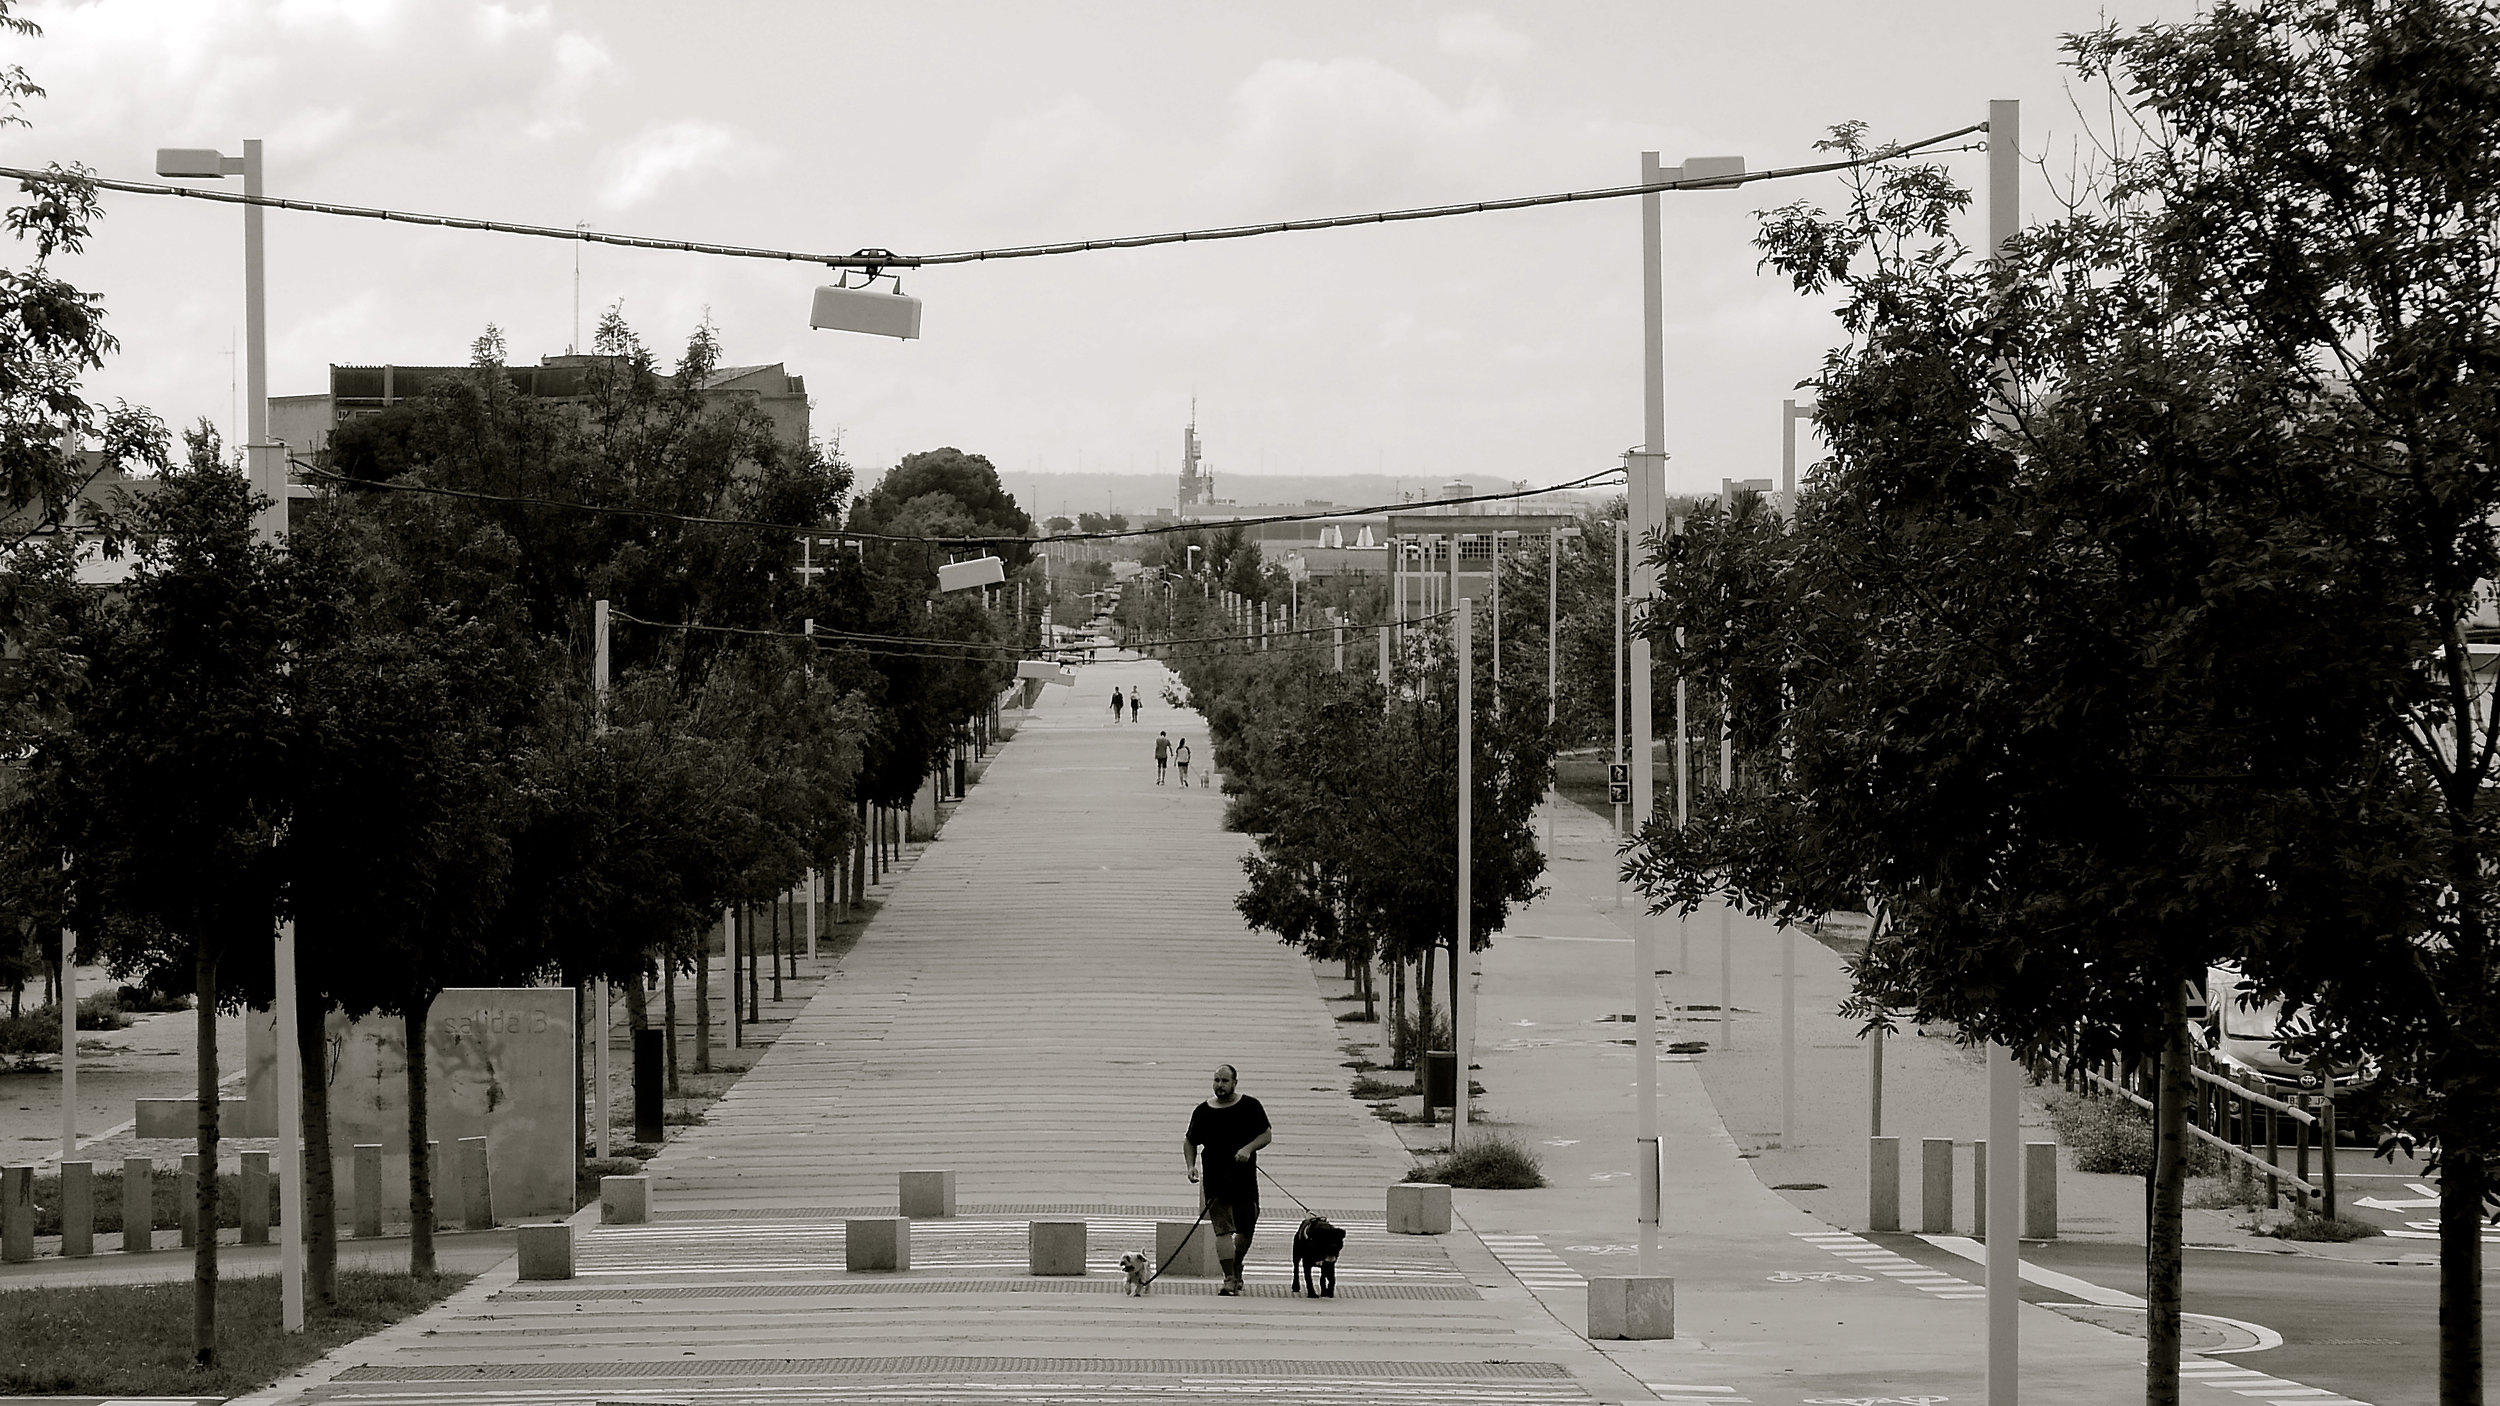 Paseo perros Oliver